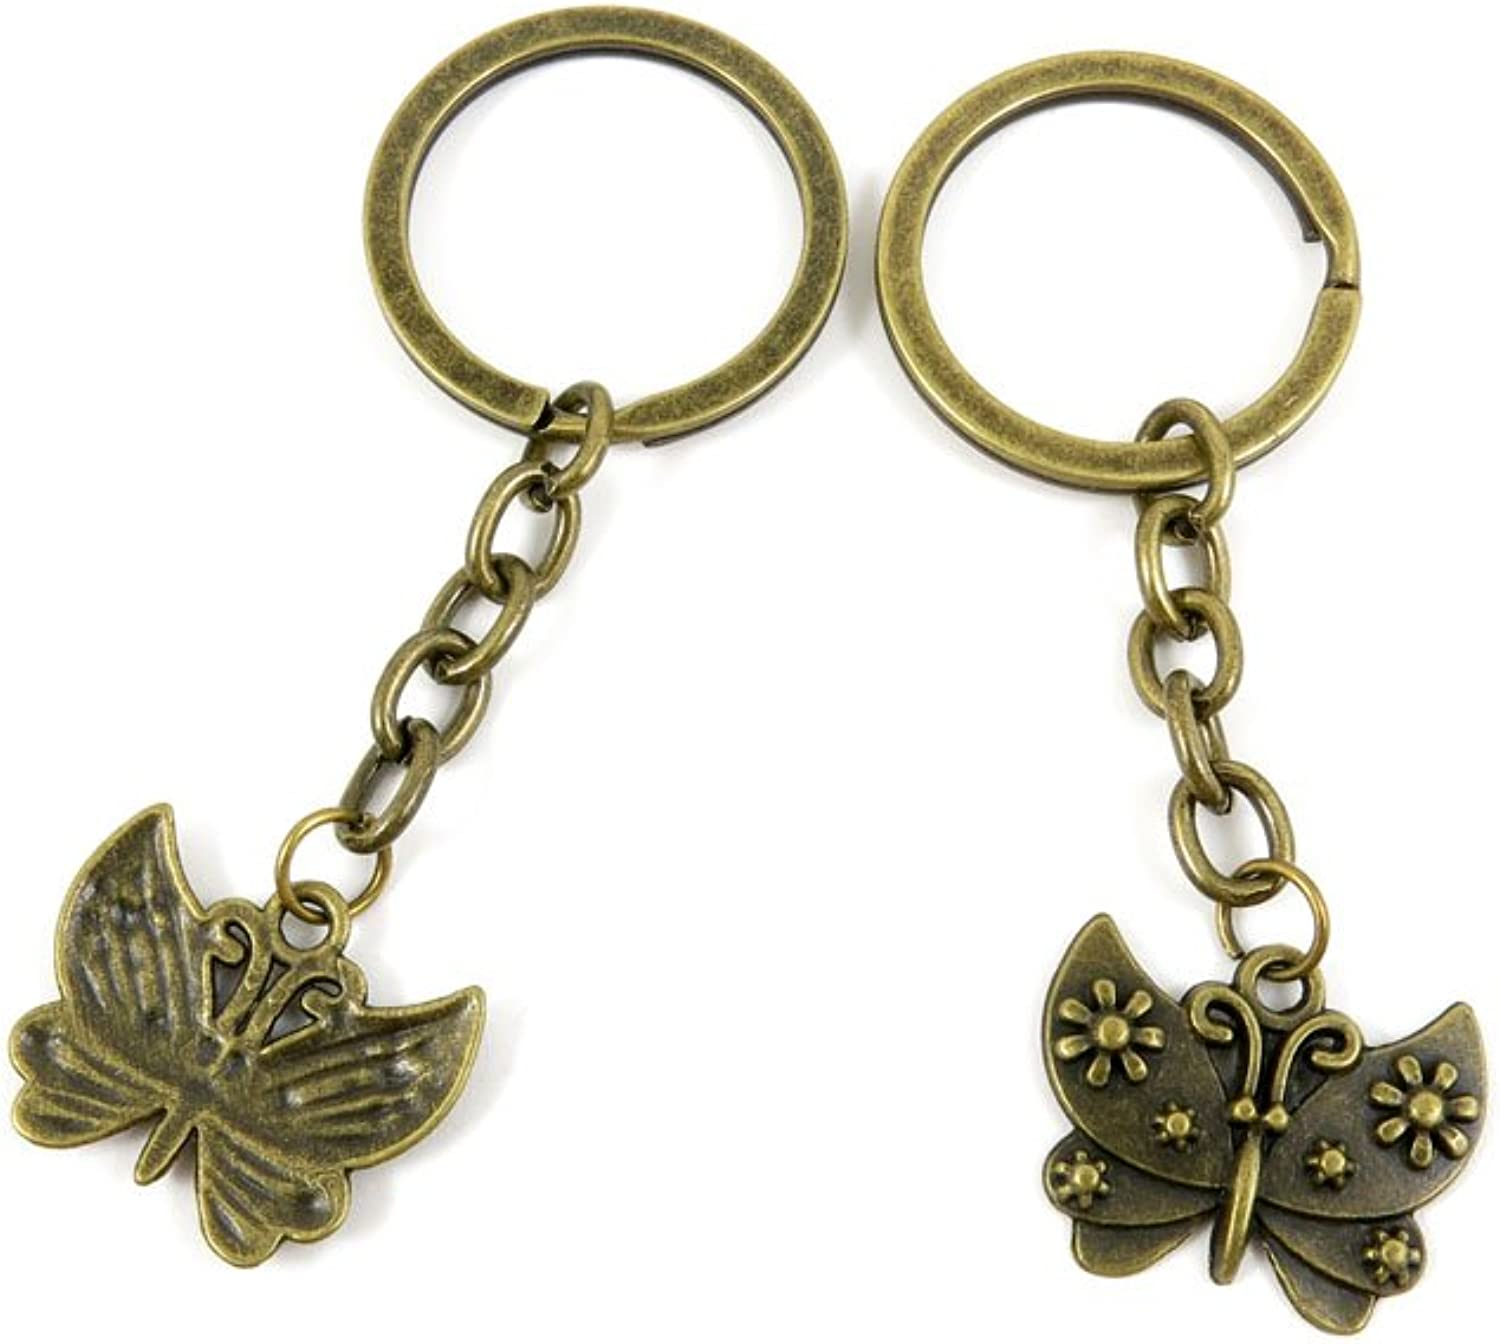 100 PCS Keyrings Keychains Key Ring Chains Tags Jewelry Findings Clasps Buckles Supplies V2SW4 Butterfly